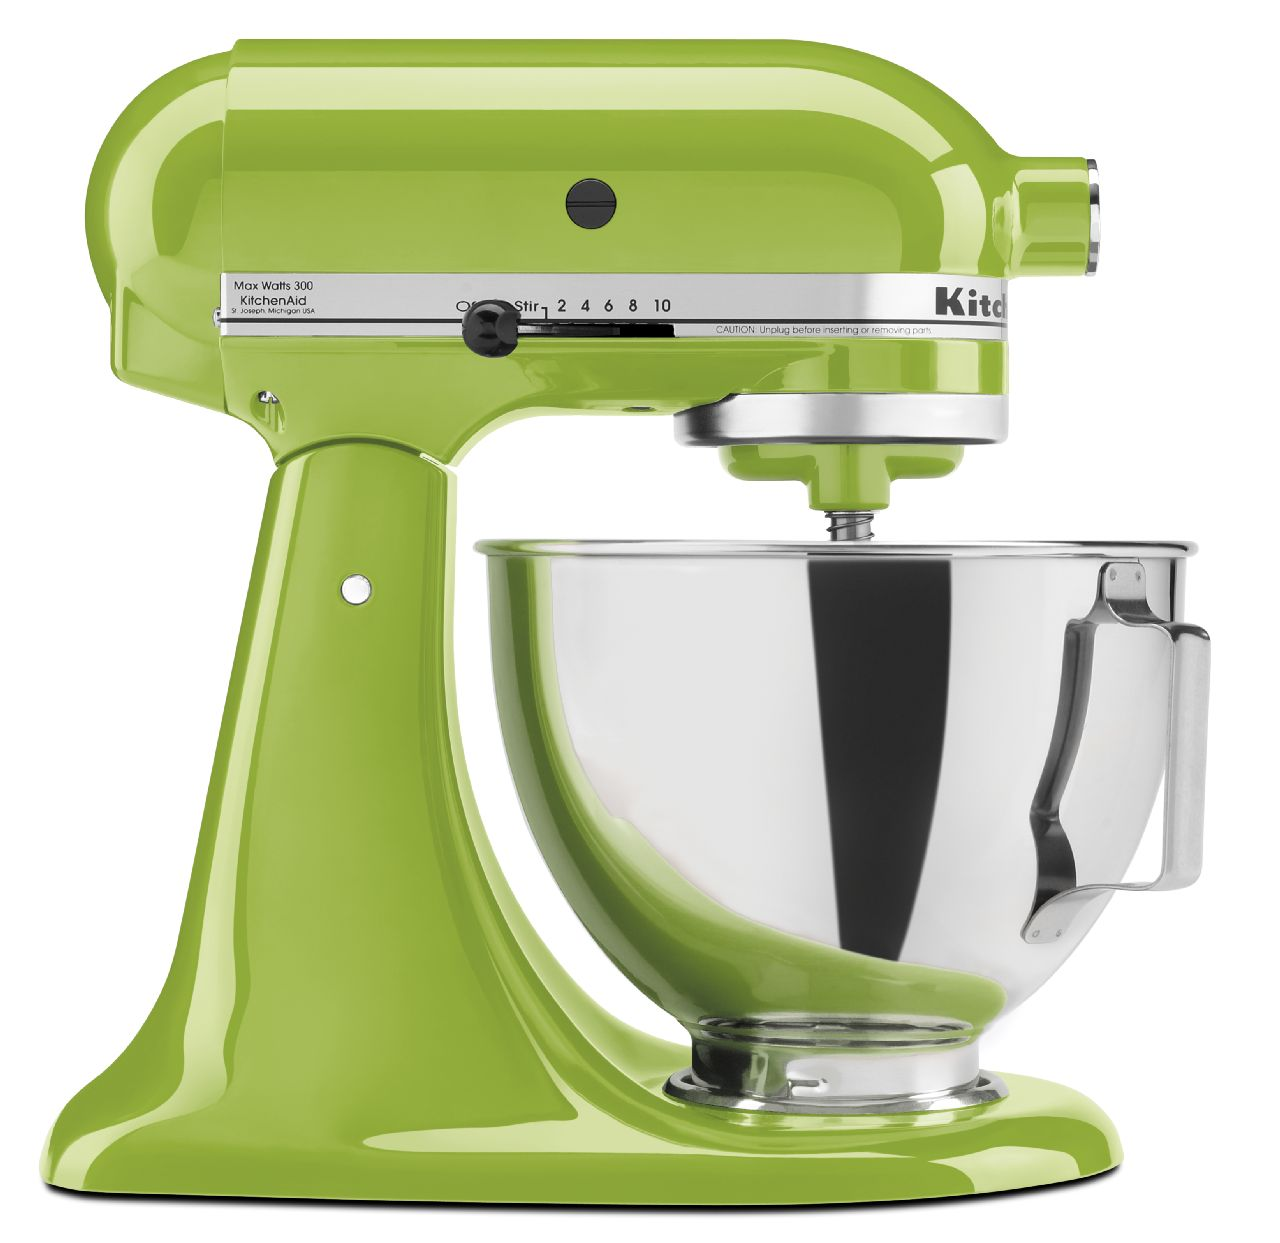 KitchenAid-4-5-quart-Tilt-Head-Stand-Mixer-with-Flex-Edge-Beater-KSM85PSQ thumbnail 15